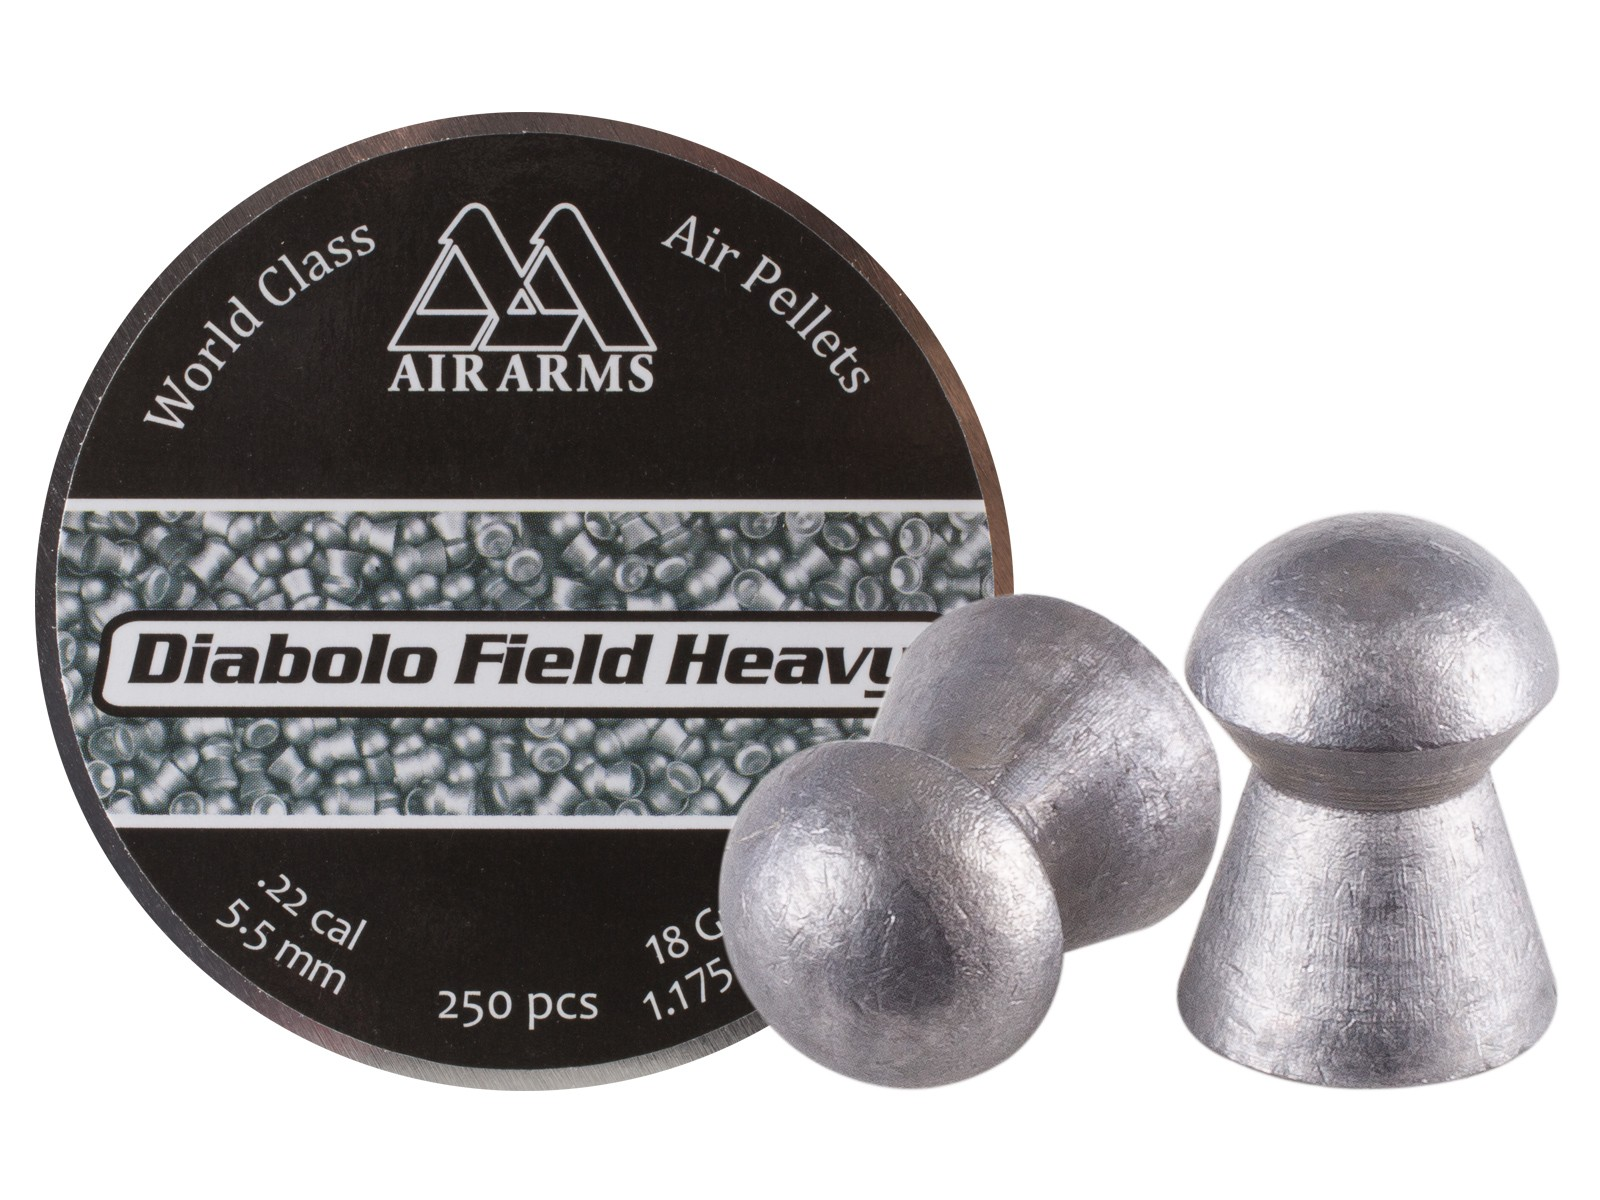 Air Arms Diabolo Field Heavy .22 Cal